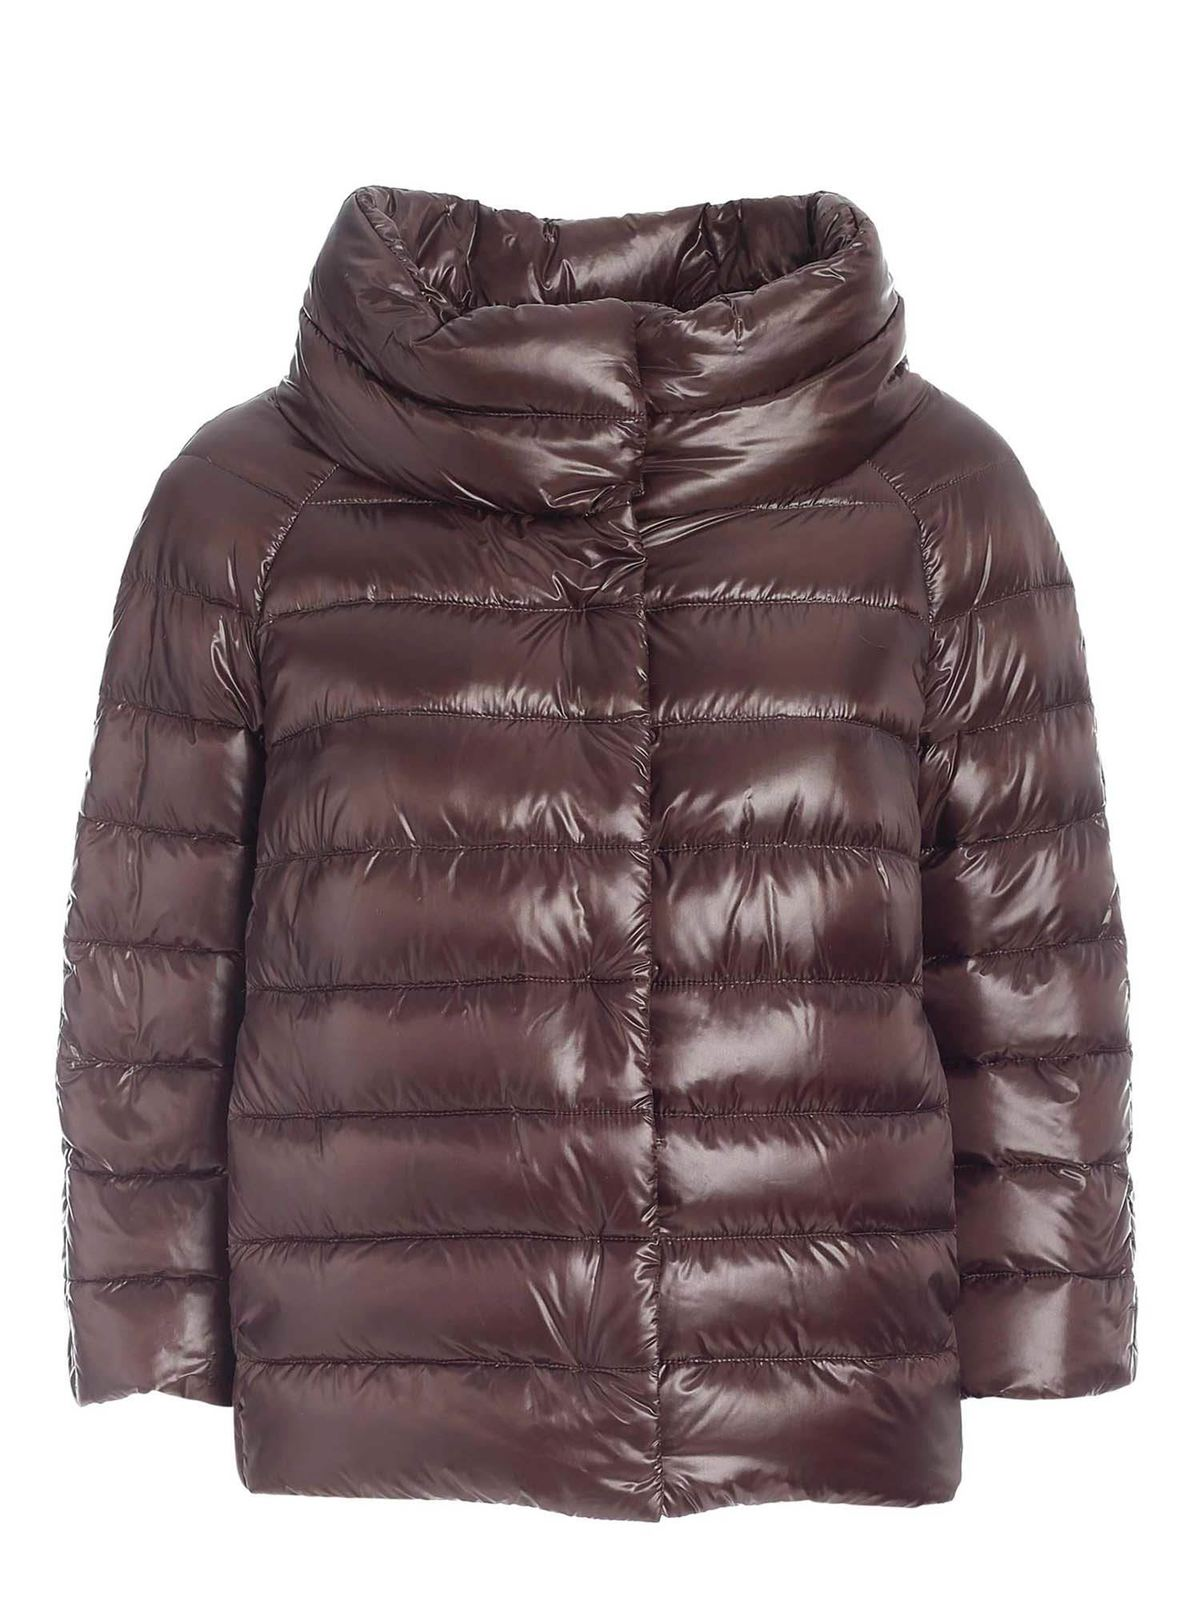 Herno ICONICO COLLECTION DOWN JACKET IN MUD COLOR